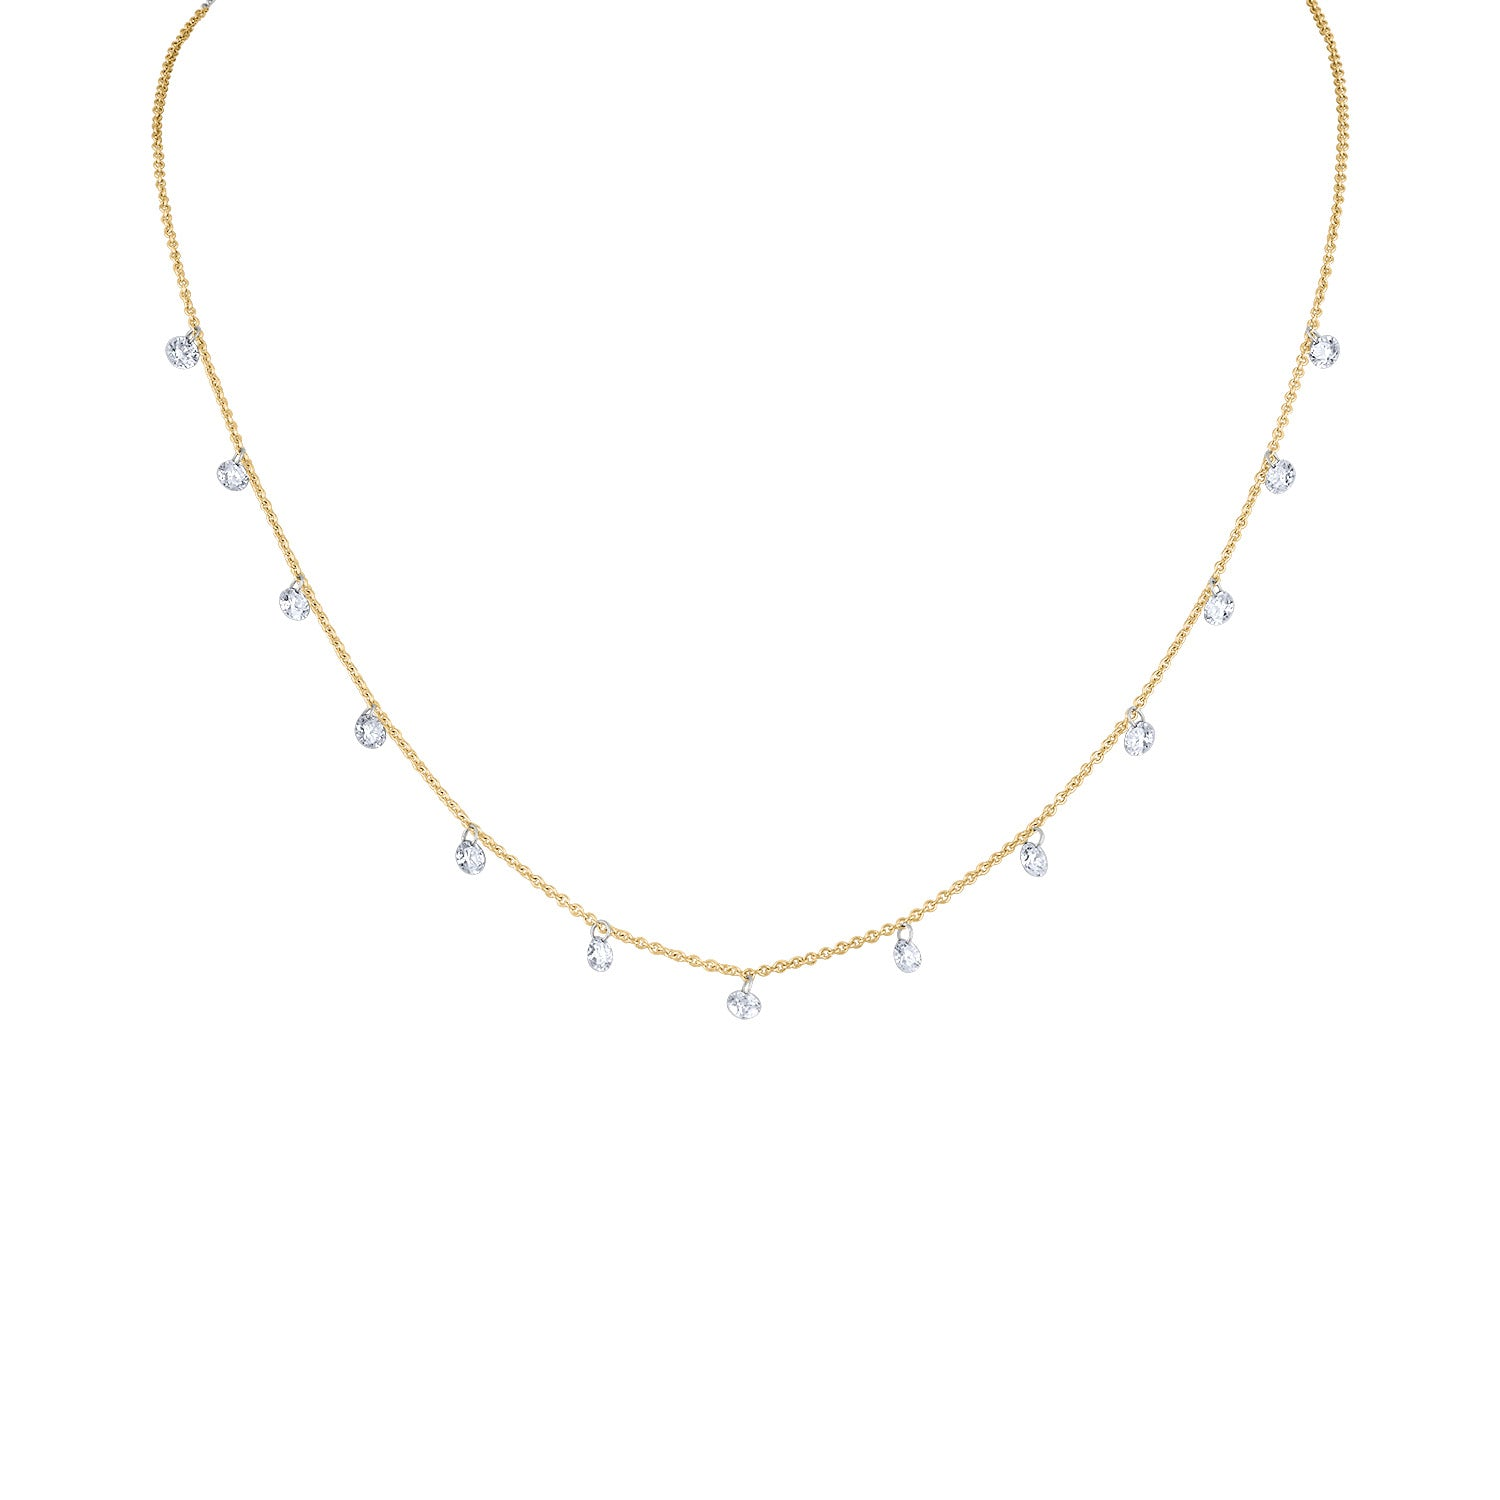 14KT GOLD THIRTEEN PIERCED DIAMOND DANGLE NECKLACE